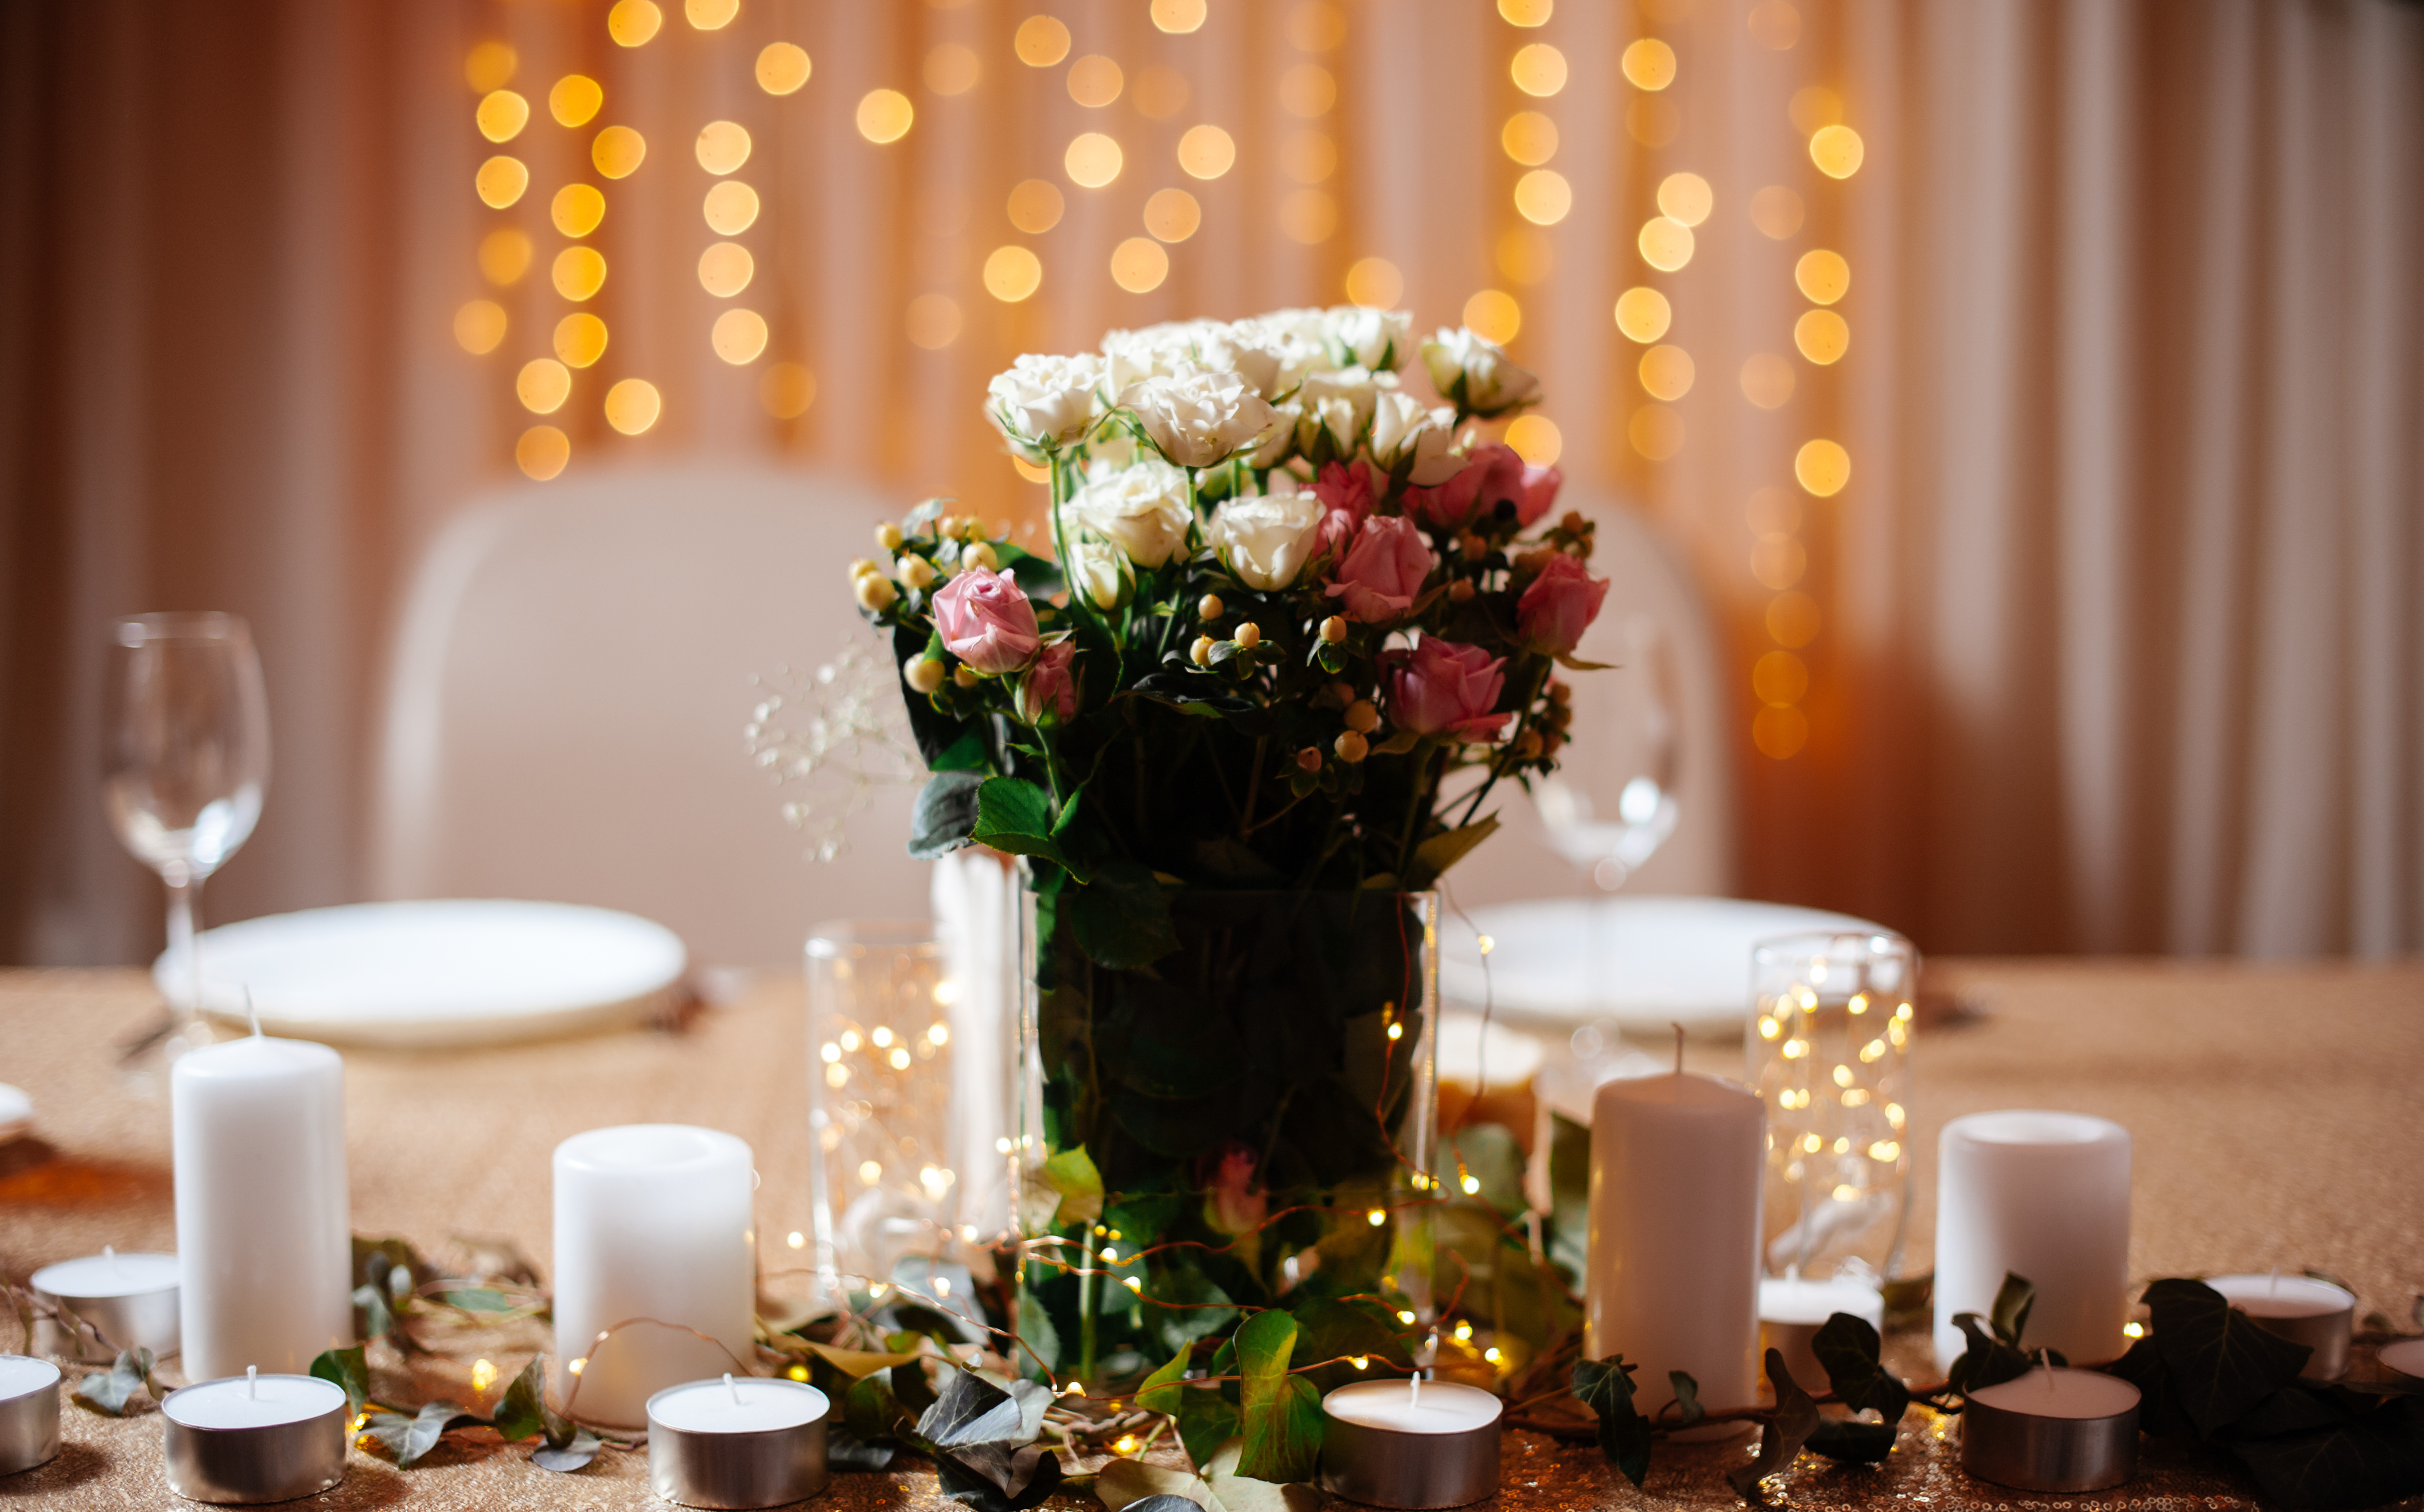 LED wedding lights - lighted centerpieces with LED fairy lights